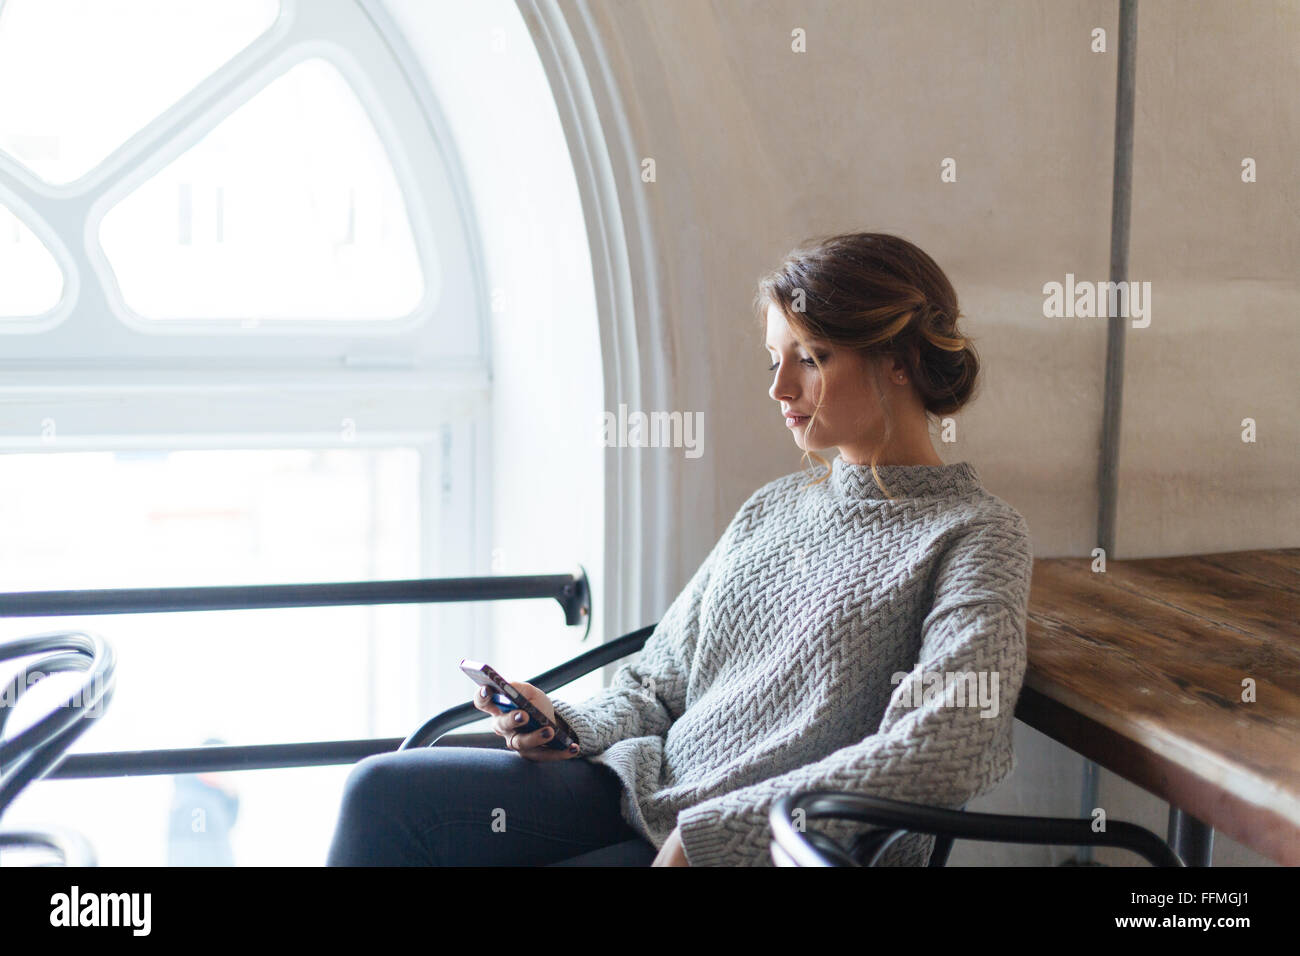 Young Beautiful woman using smartphone in cafe Photo Stock